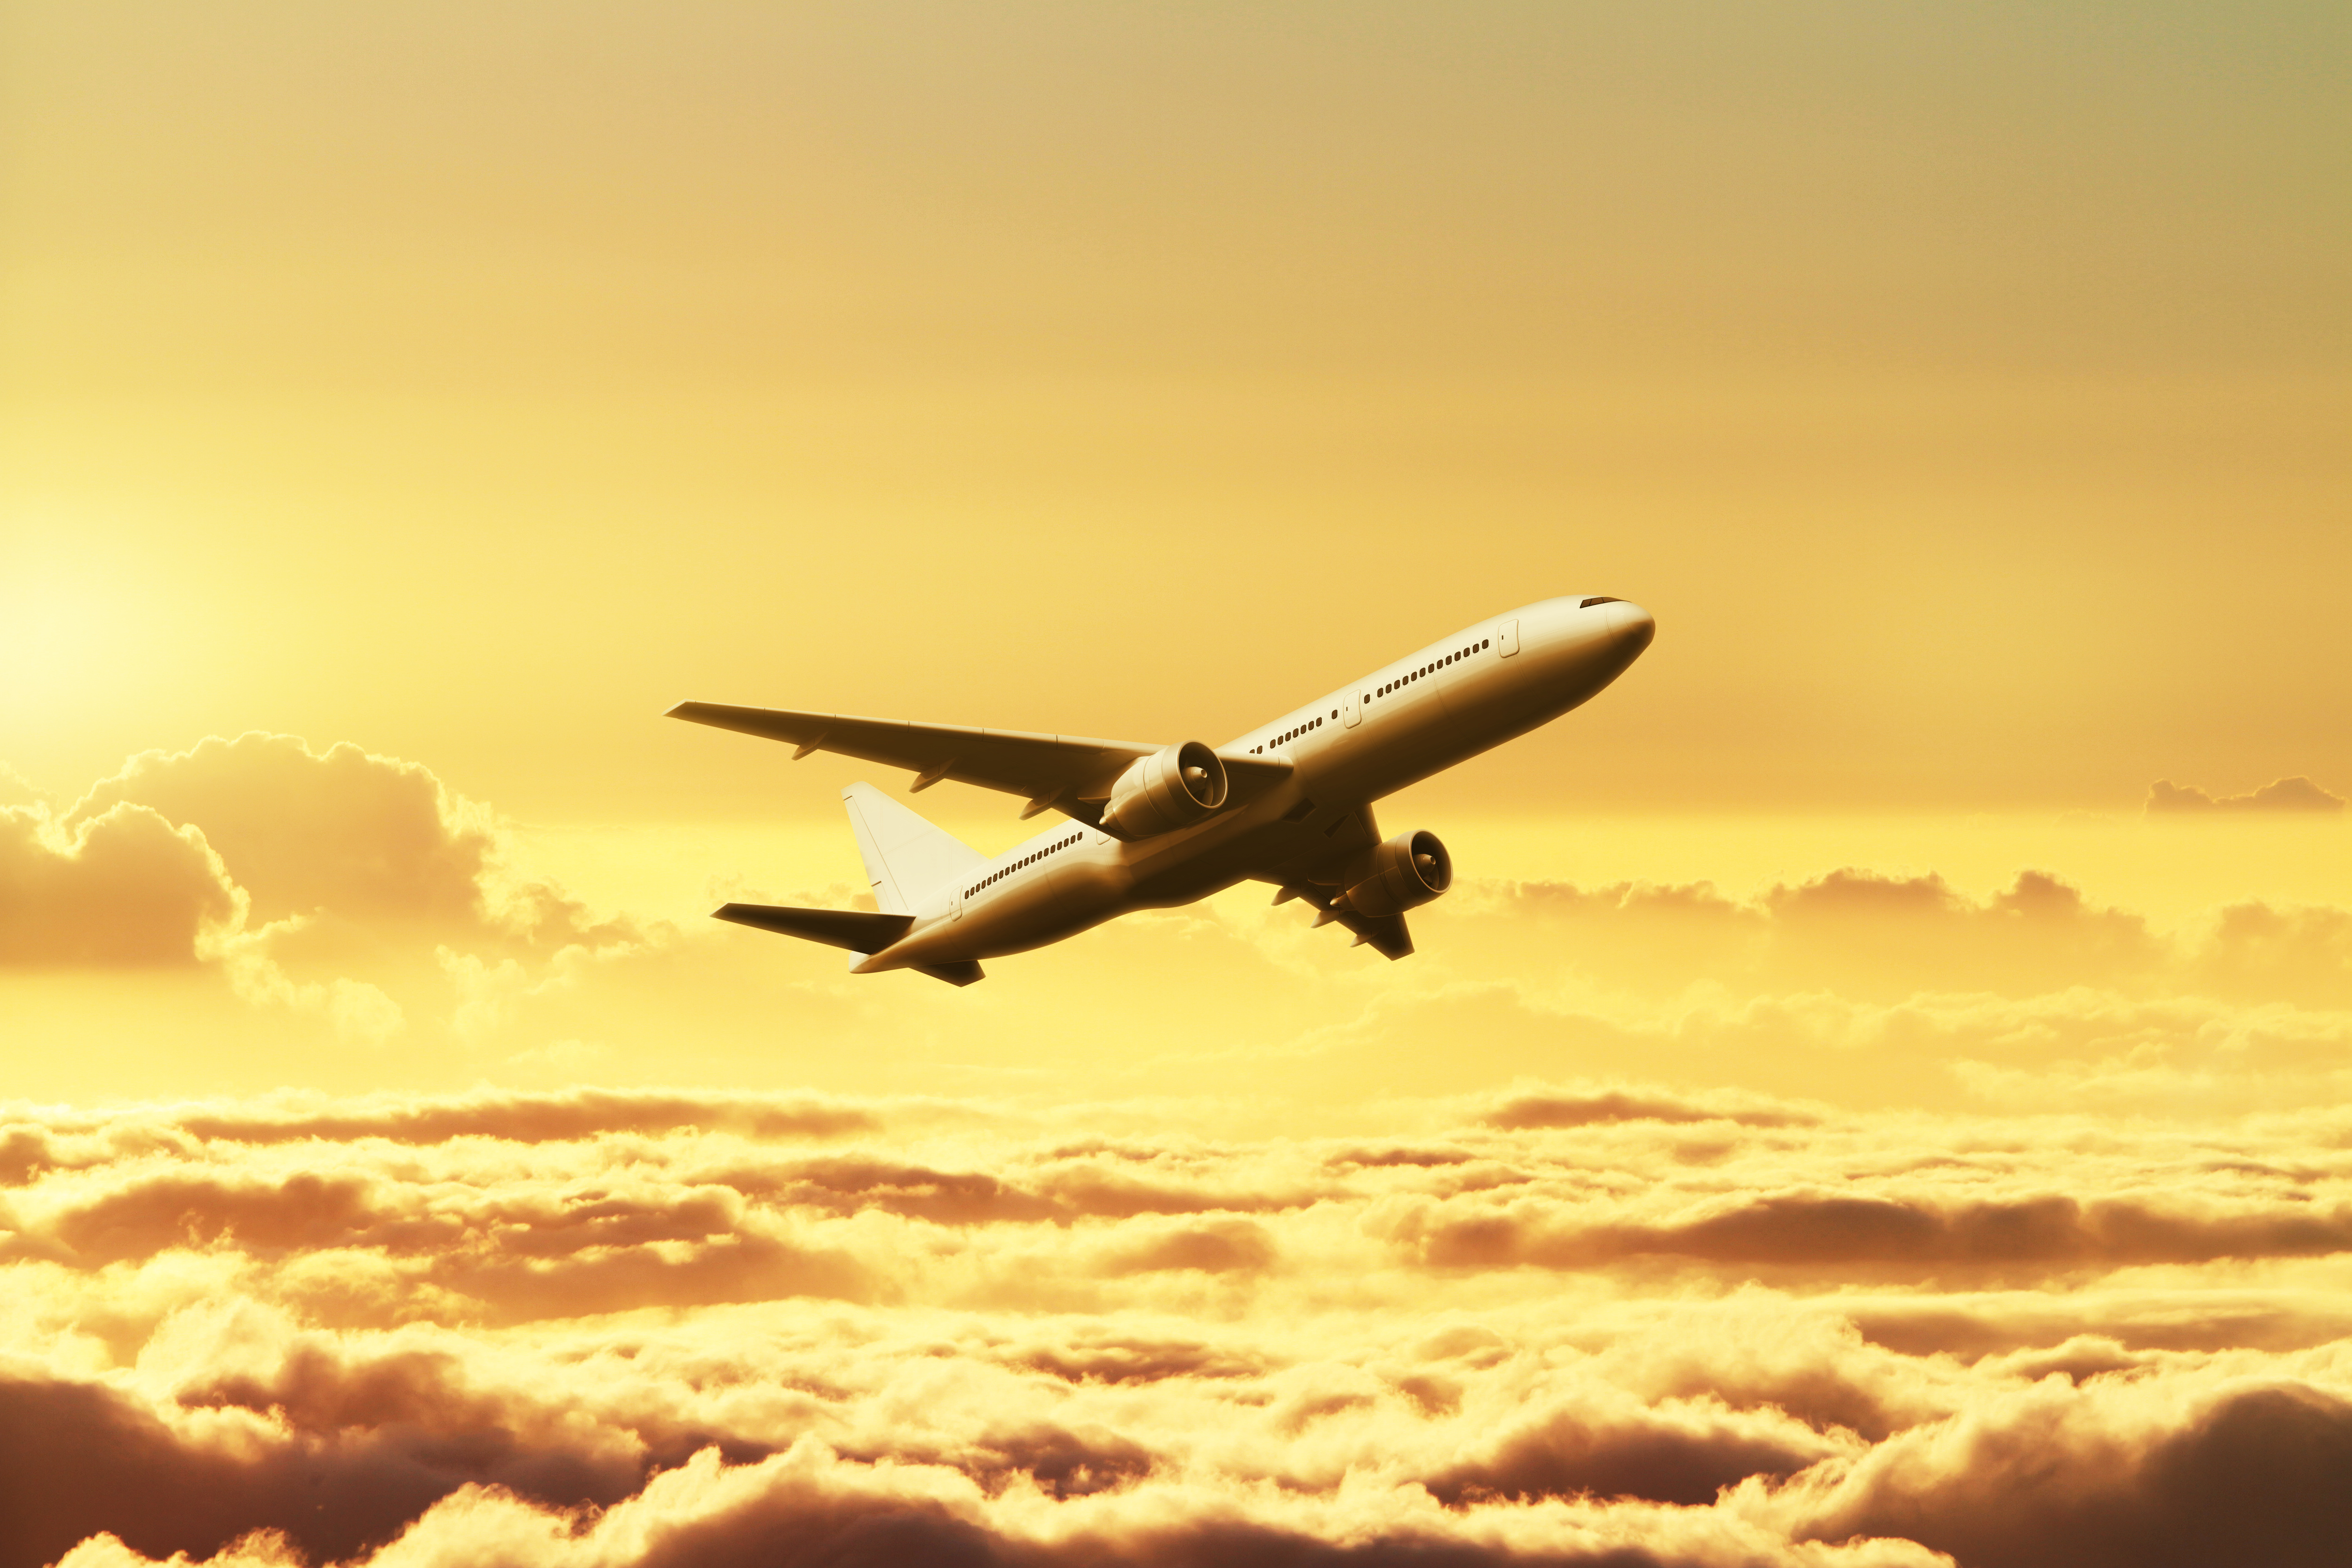 Top Content Marketing Tips For Travel Brands